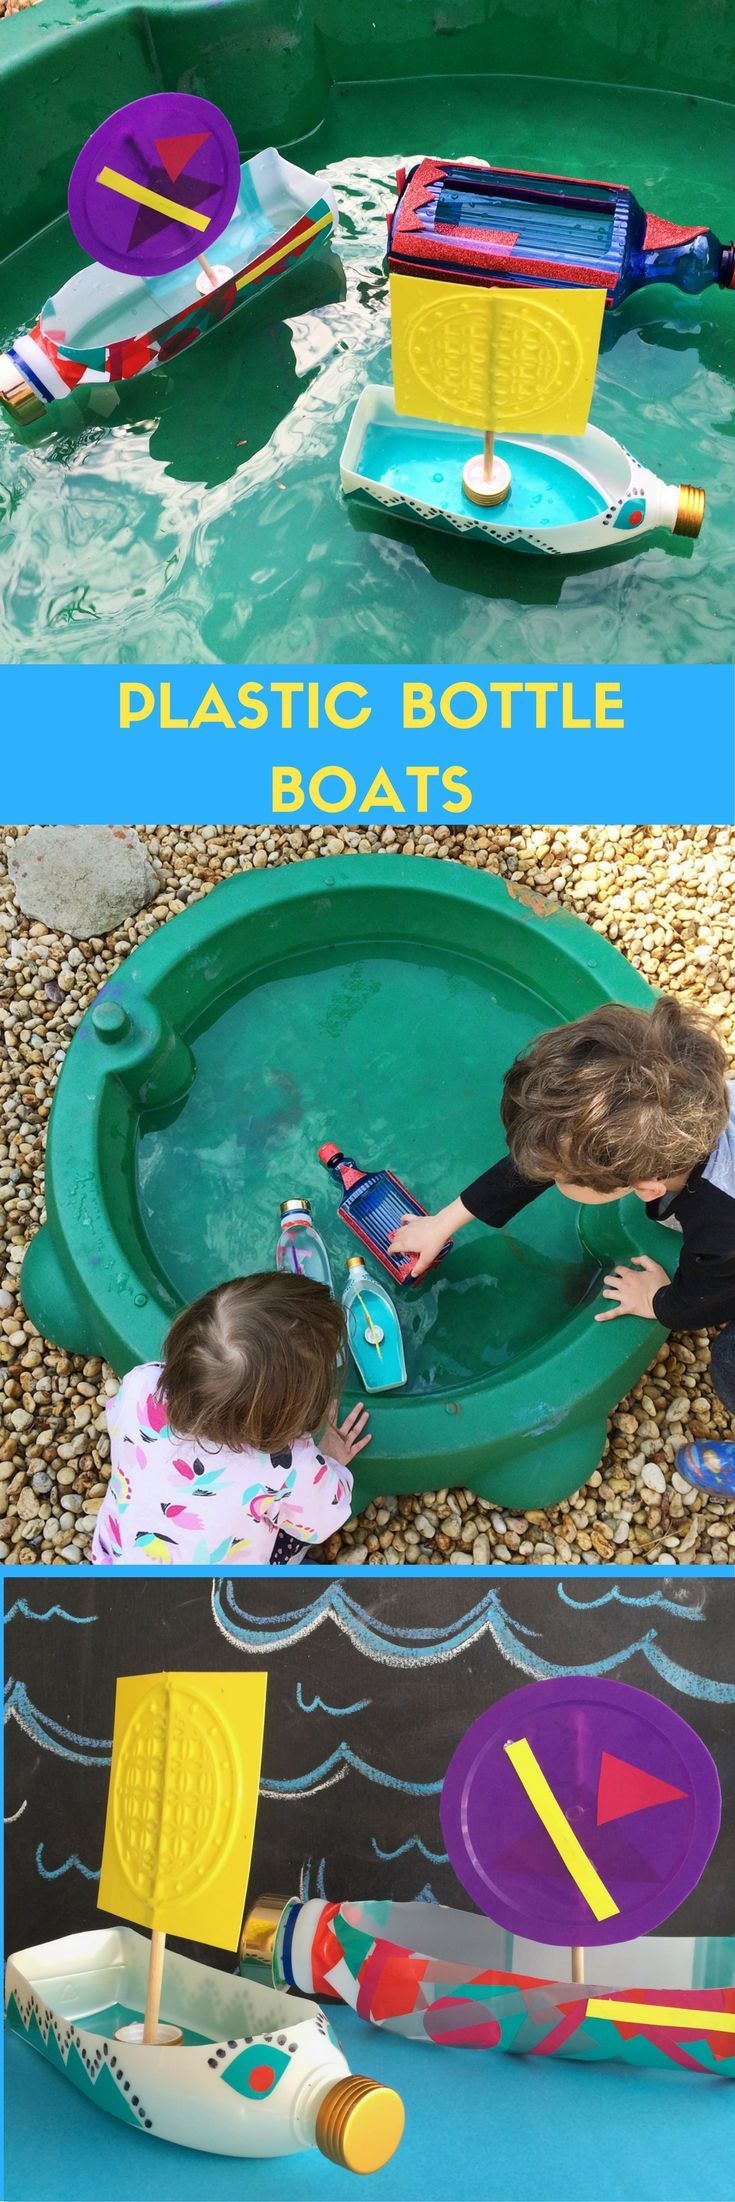 Plastic bottle boats — Handy with Scissors